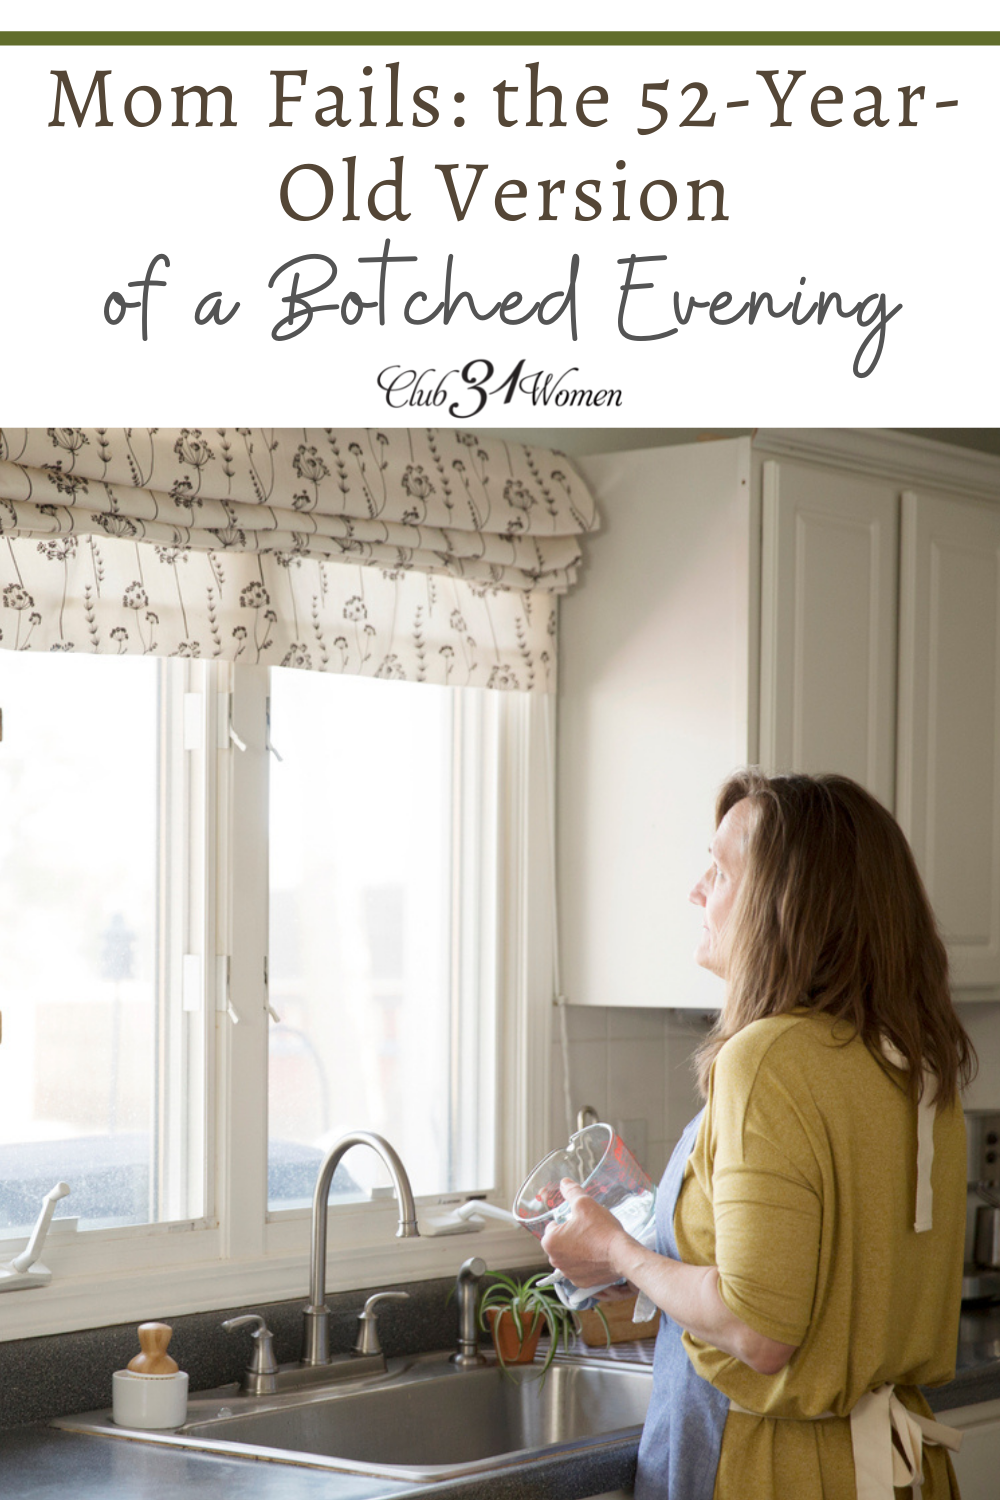 Mom Fails: the 52-Year-Old Version of a Botched Evening via @Club31Women